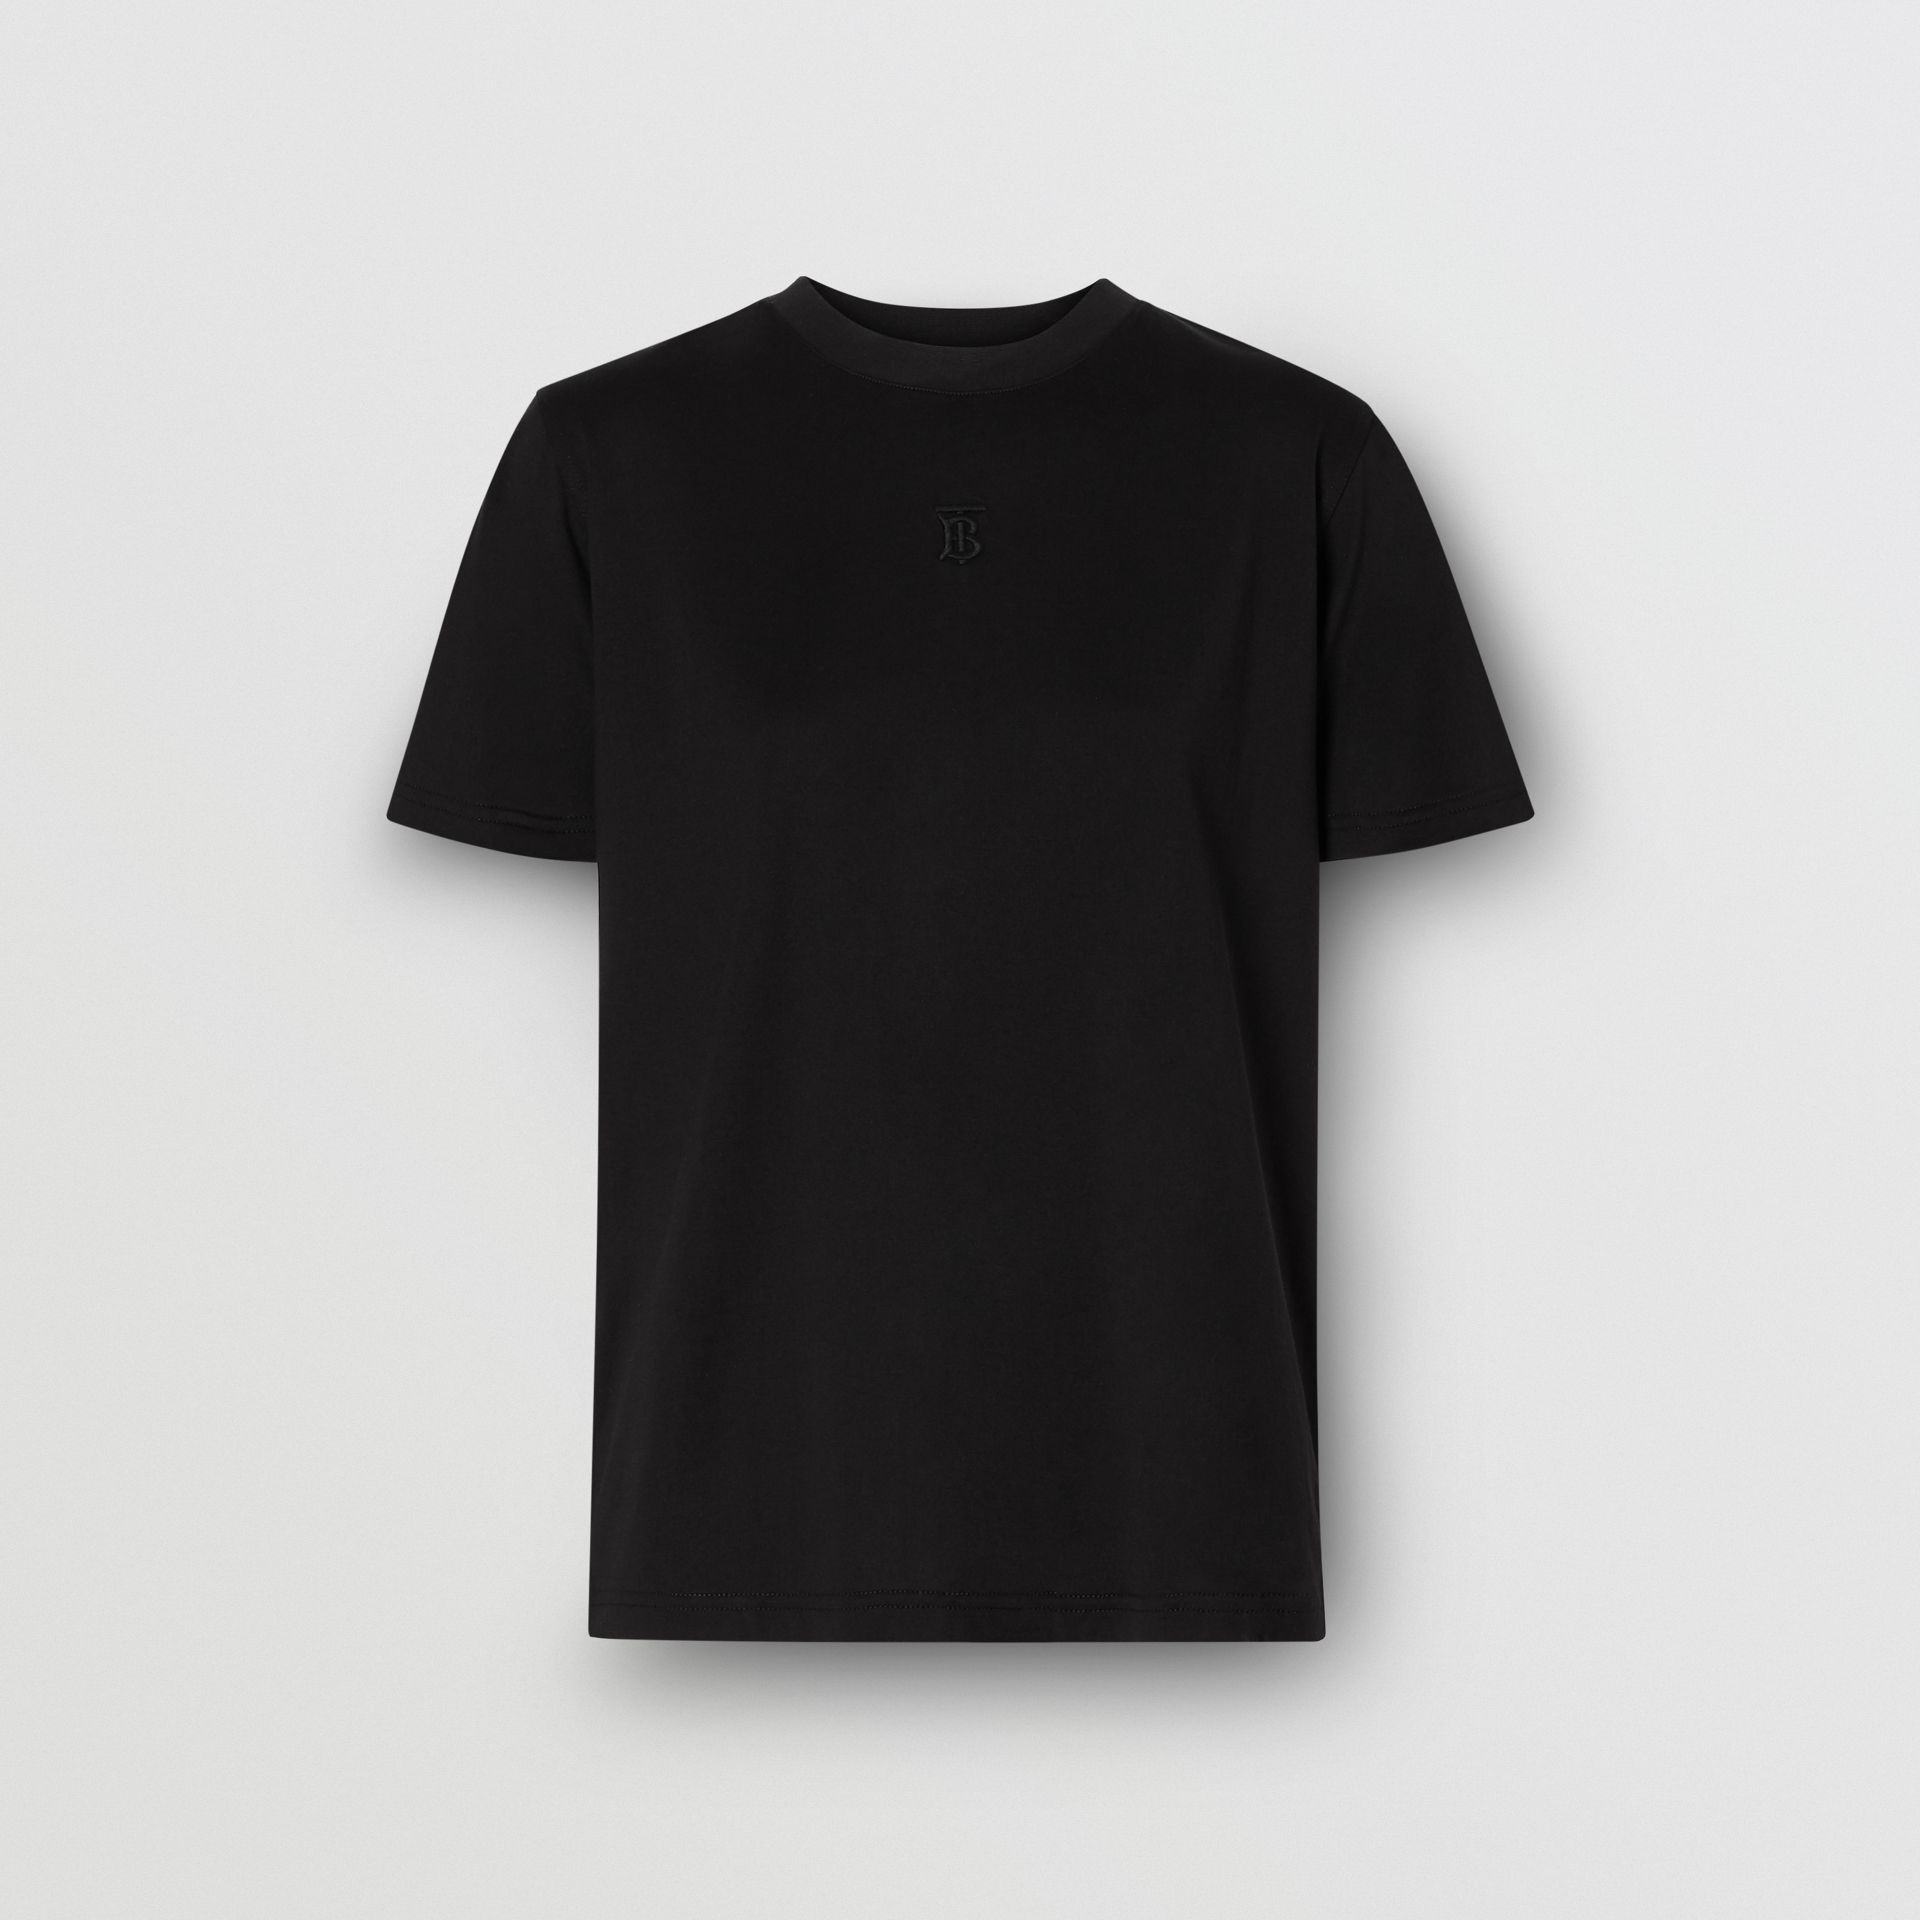 Monogram Motif Cotton T-shirt in Black - Women | Burberry Australia - gallery image 3